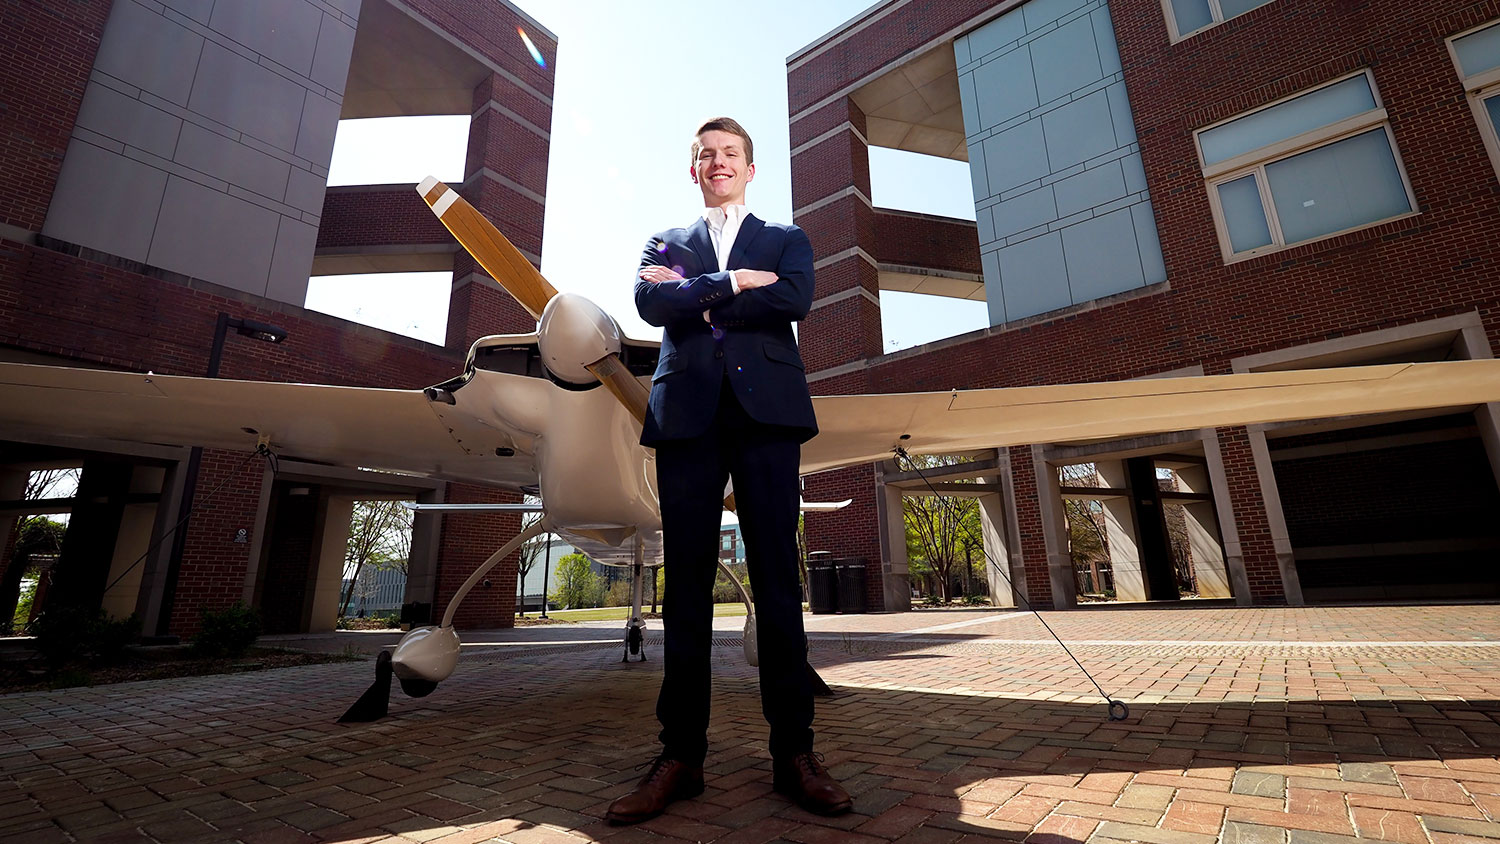 Goldwater Scholar Andrew Mistele in front of an airplane near the Engineering buildings on Centennial Campus